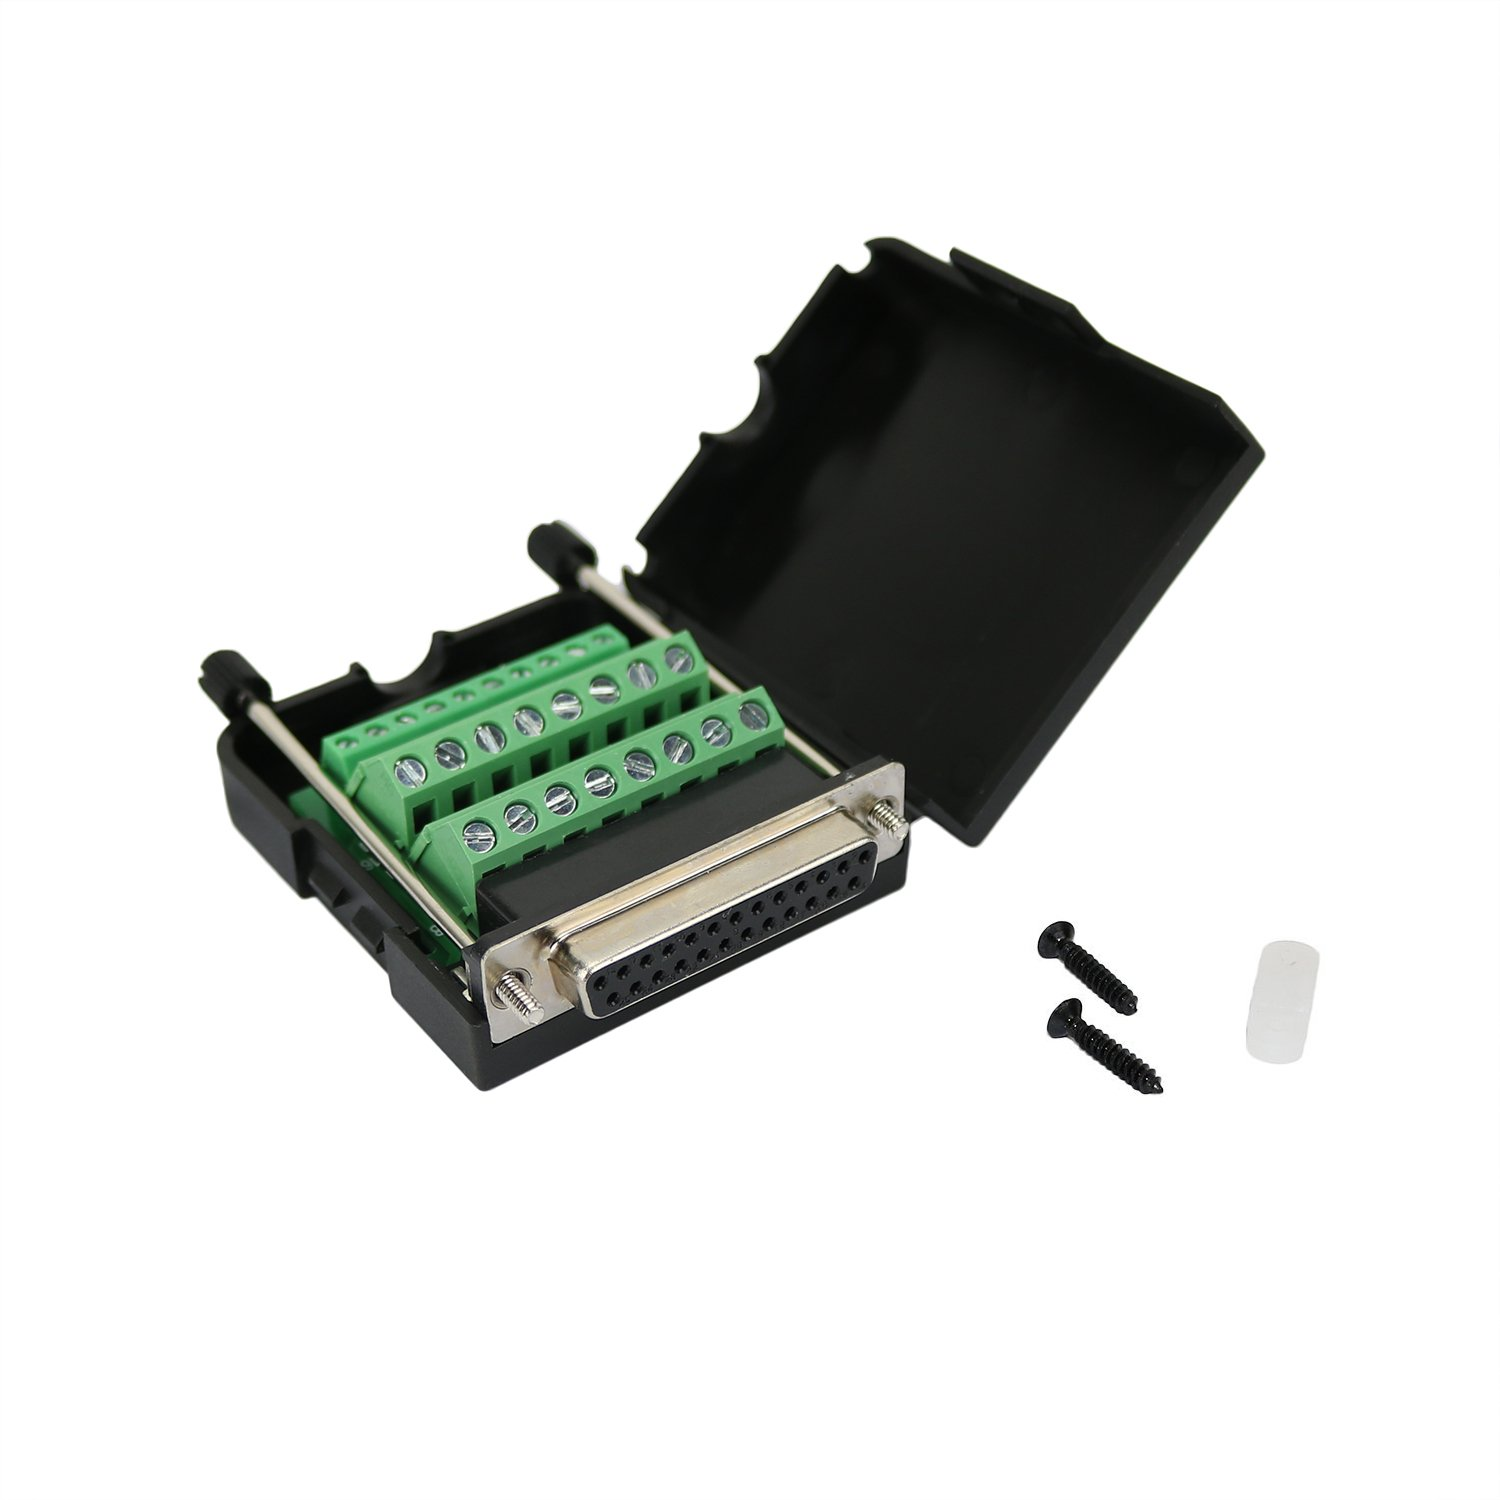 Twinkle Bay DB25 Connector to Wiring Terminal Db25 Breakout Board Solder-free (Female Adapter with Case)